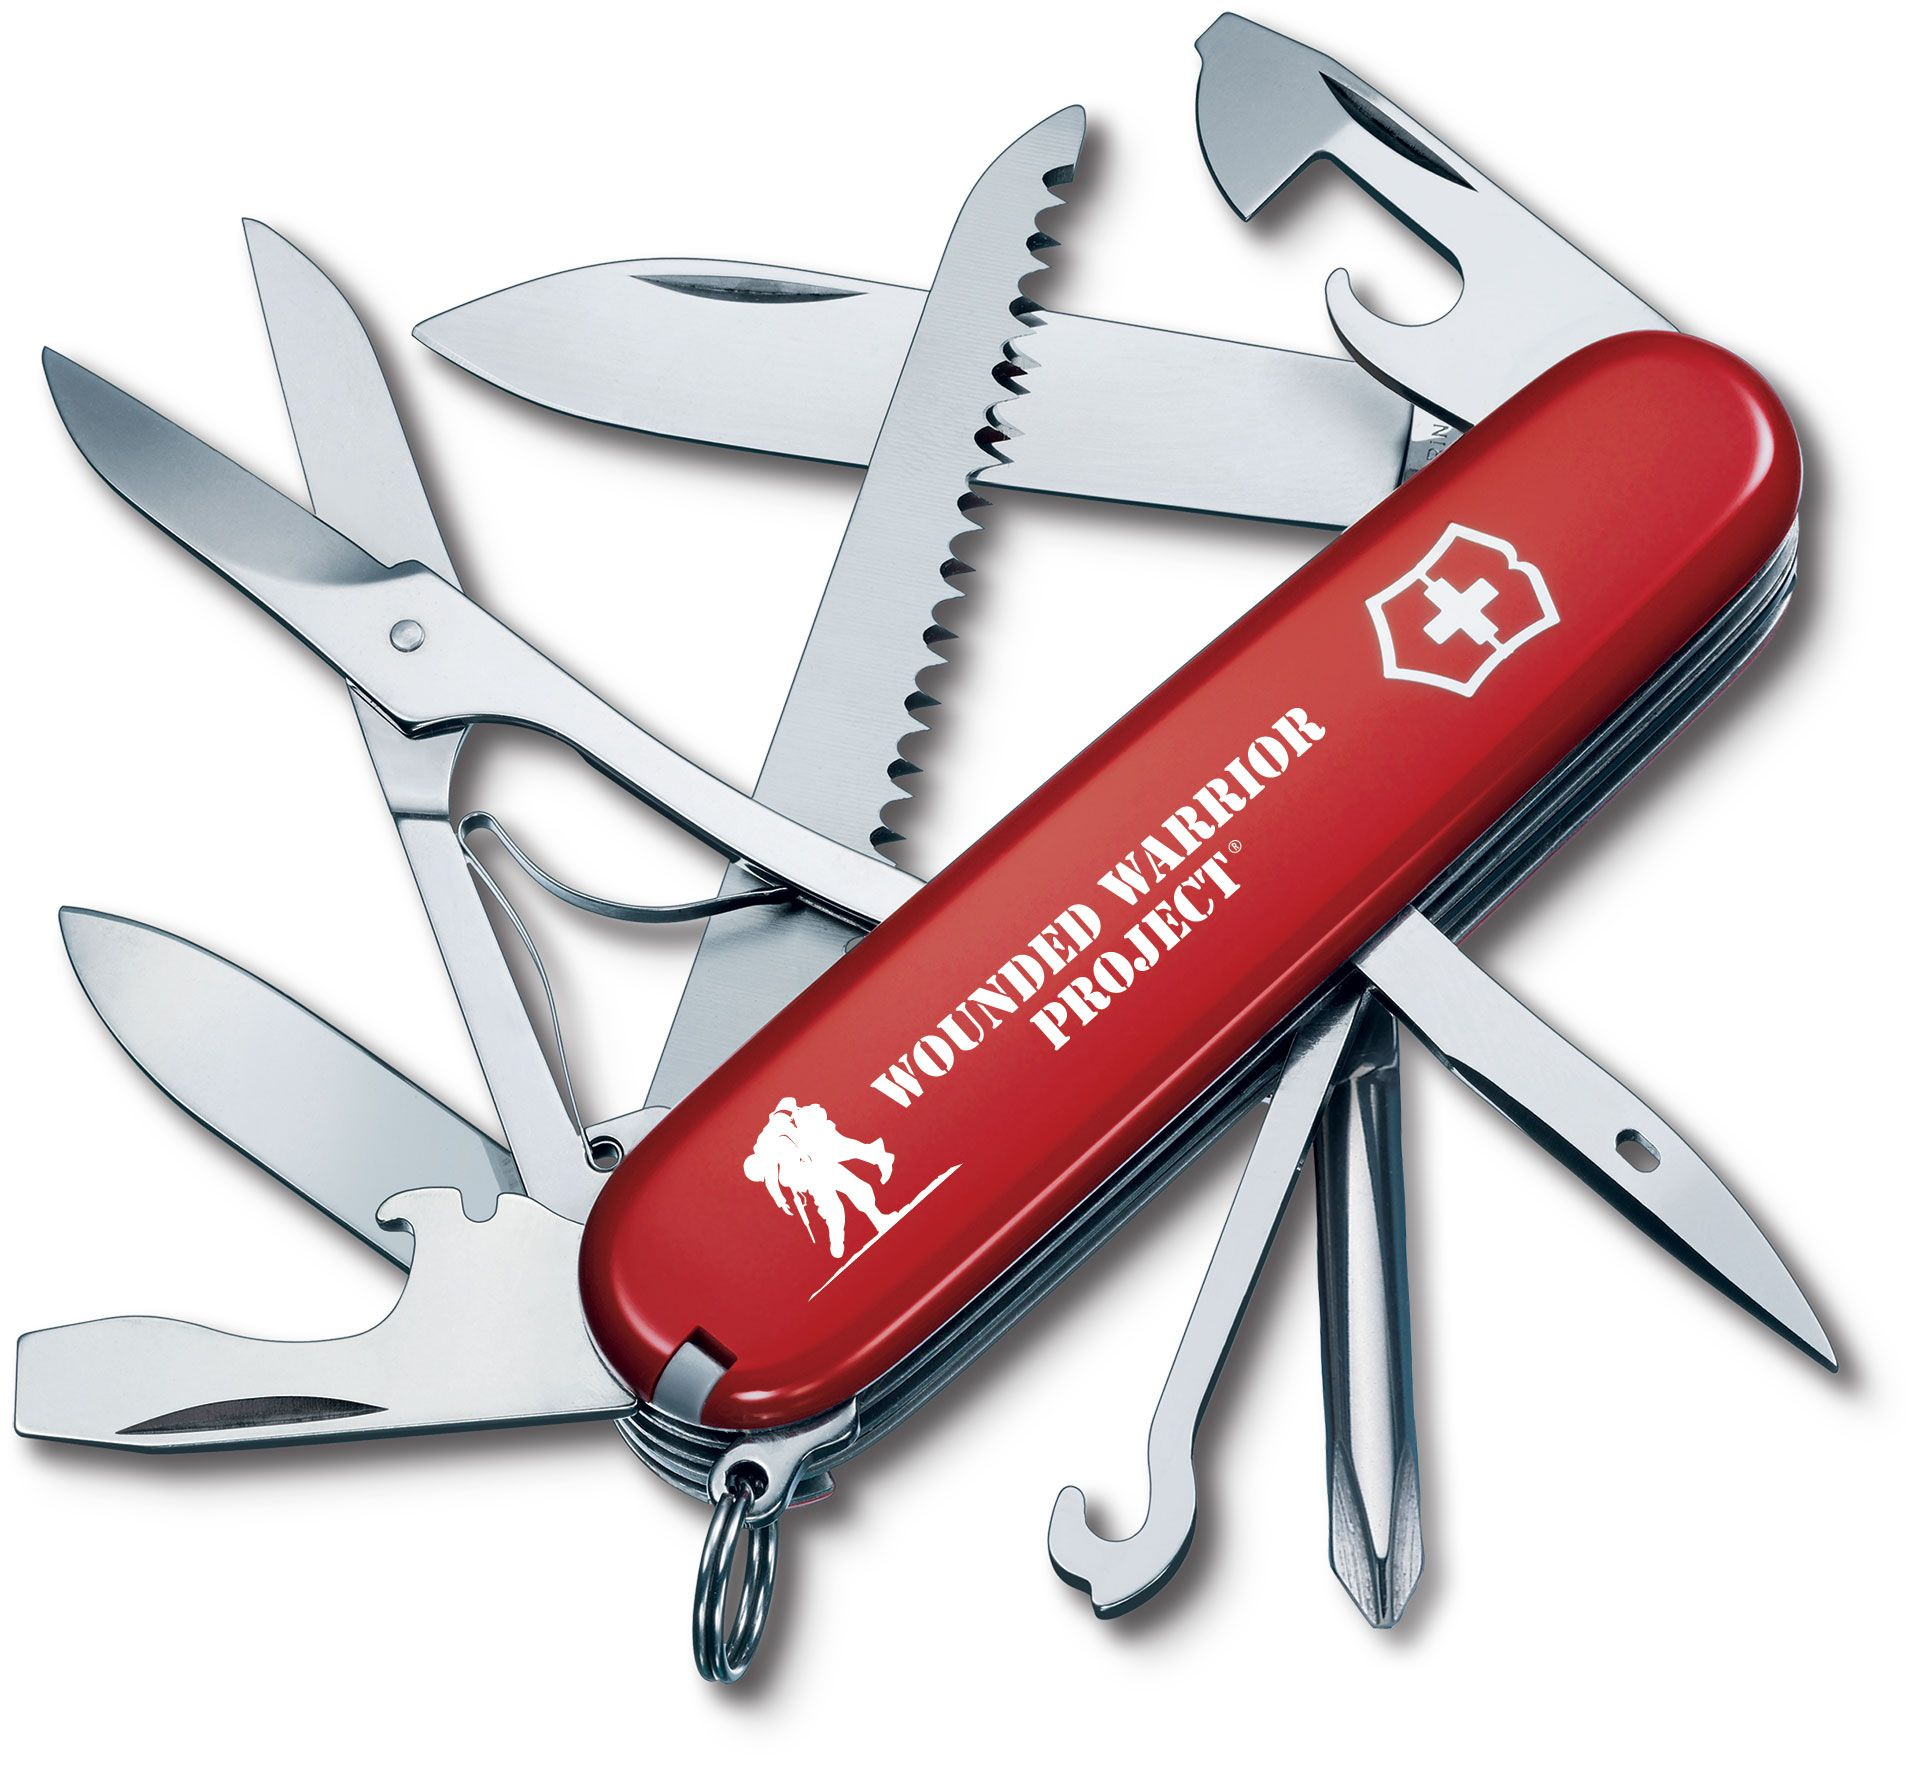 Victorinox Swiss Army Wounded Warrior Project Fieldmaster Multi-Tool, Red, 3.58 inch Closed